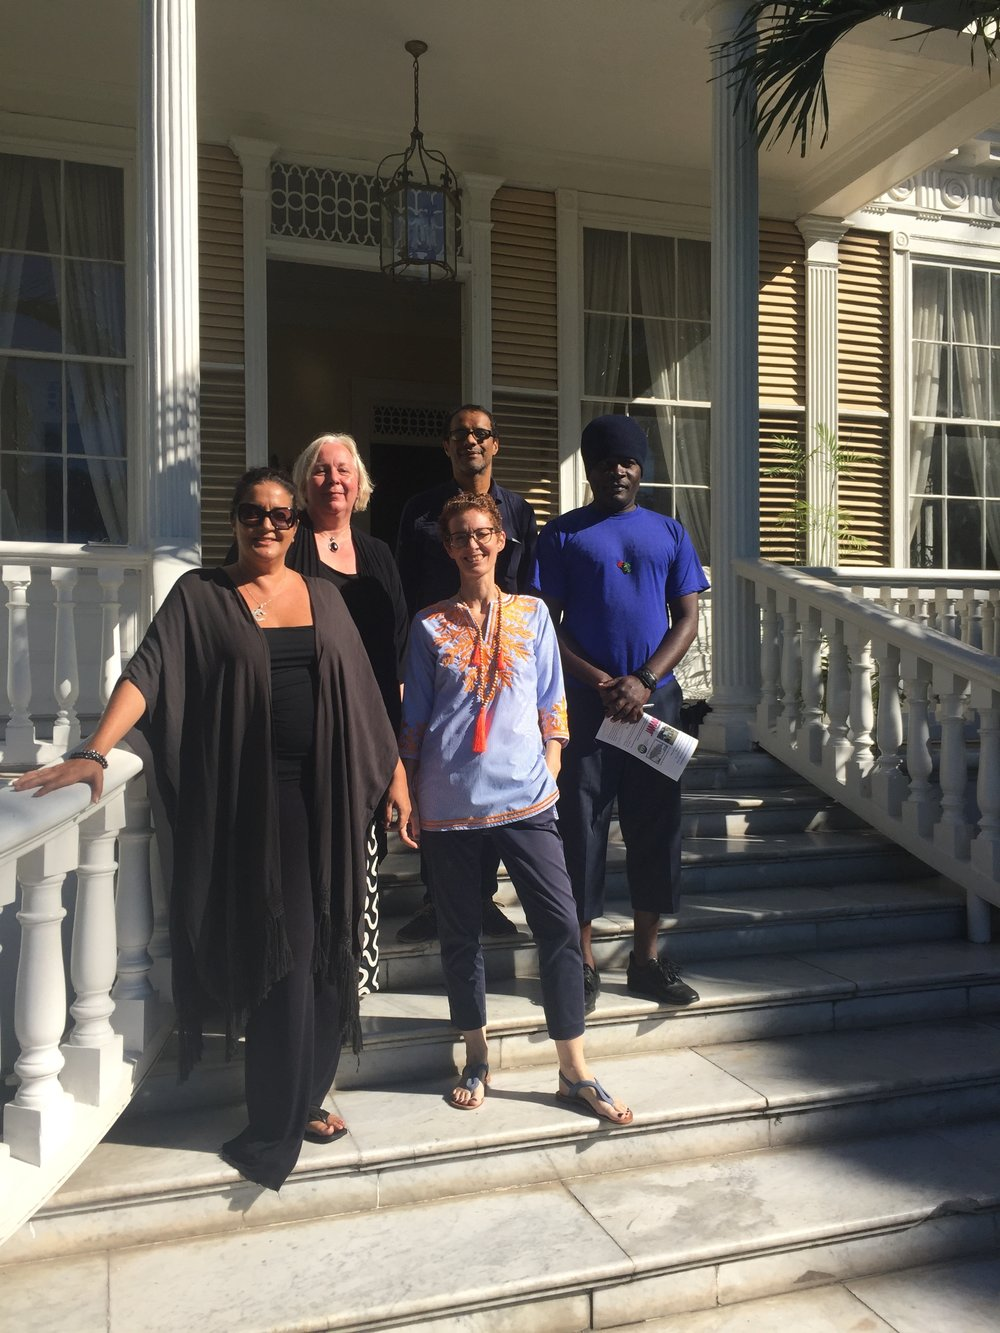 At Devon House, one of the locations for Jamaica Biennial 2017, with NGJ Director Veerle Poupeye (2nd left, back) and the 2017 selection committee, from left to right: Suzanne Fredericks, Amanda Coulson (bottom centre), Chris Cozier (to centre) and Omari Ra (far right)